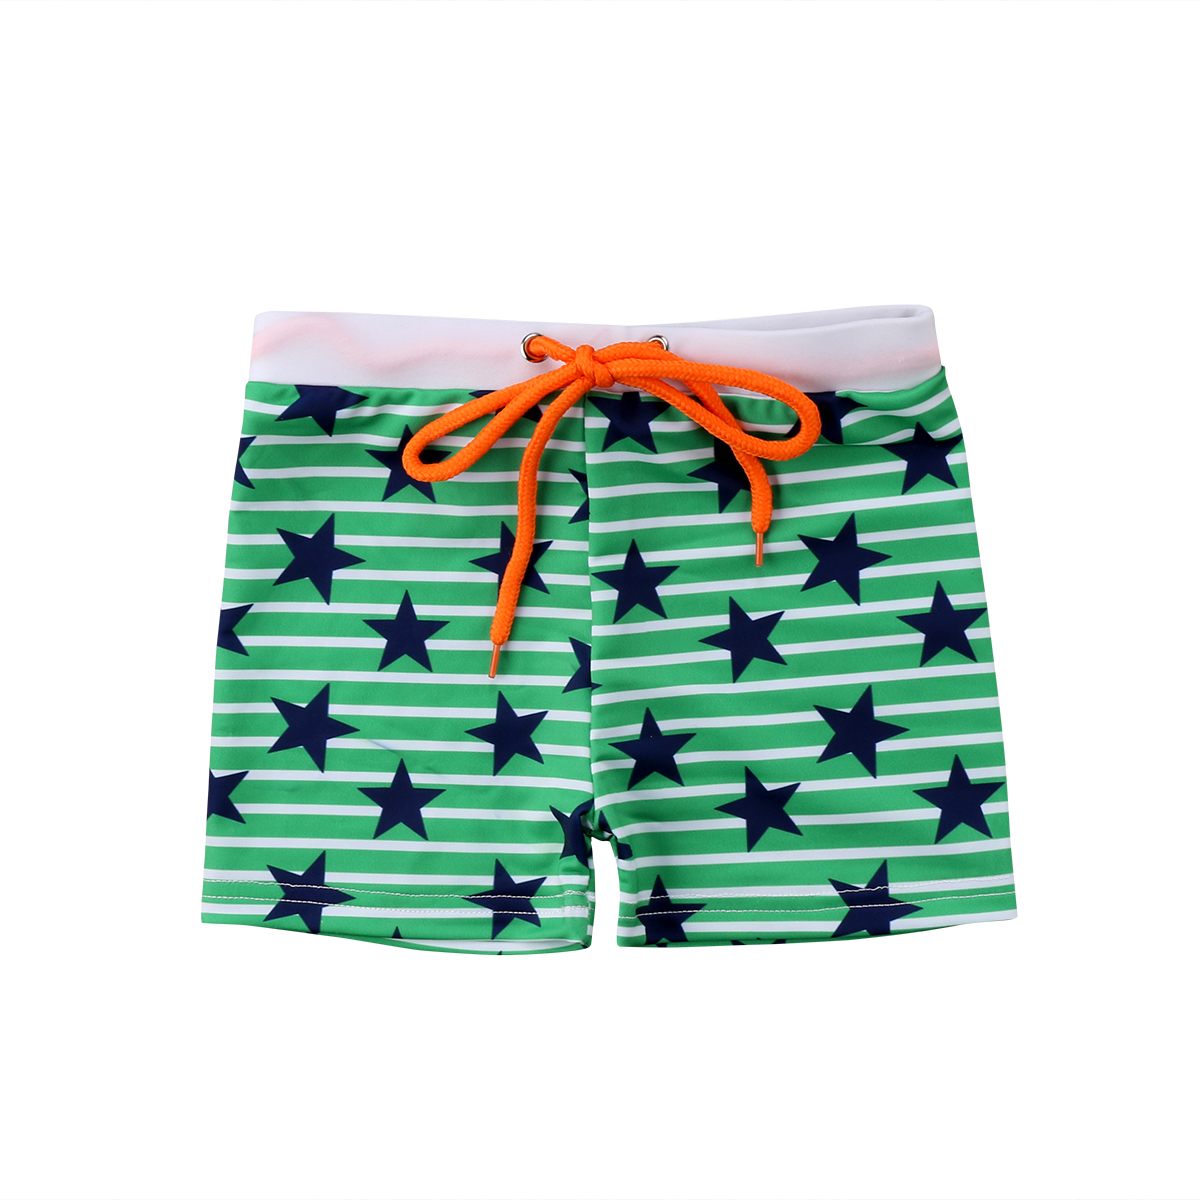 FullBo Stripes and Flamingos Little Boys Short Swim Trunks Quick Dry Beach Shorts